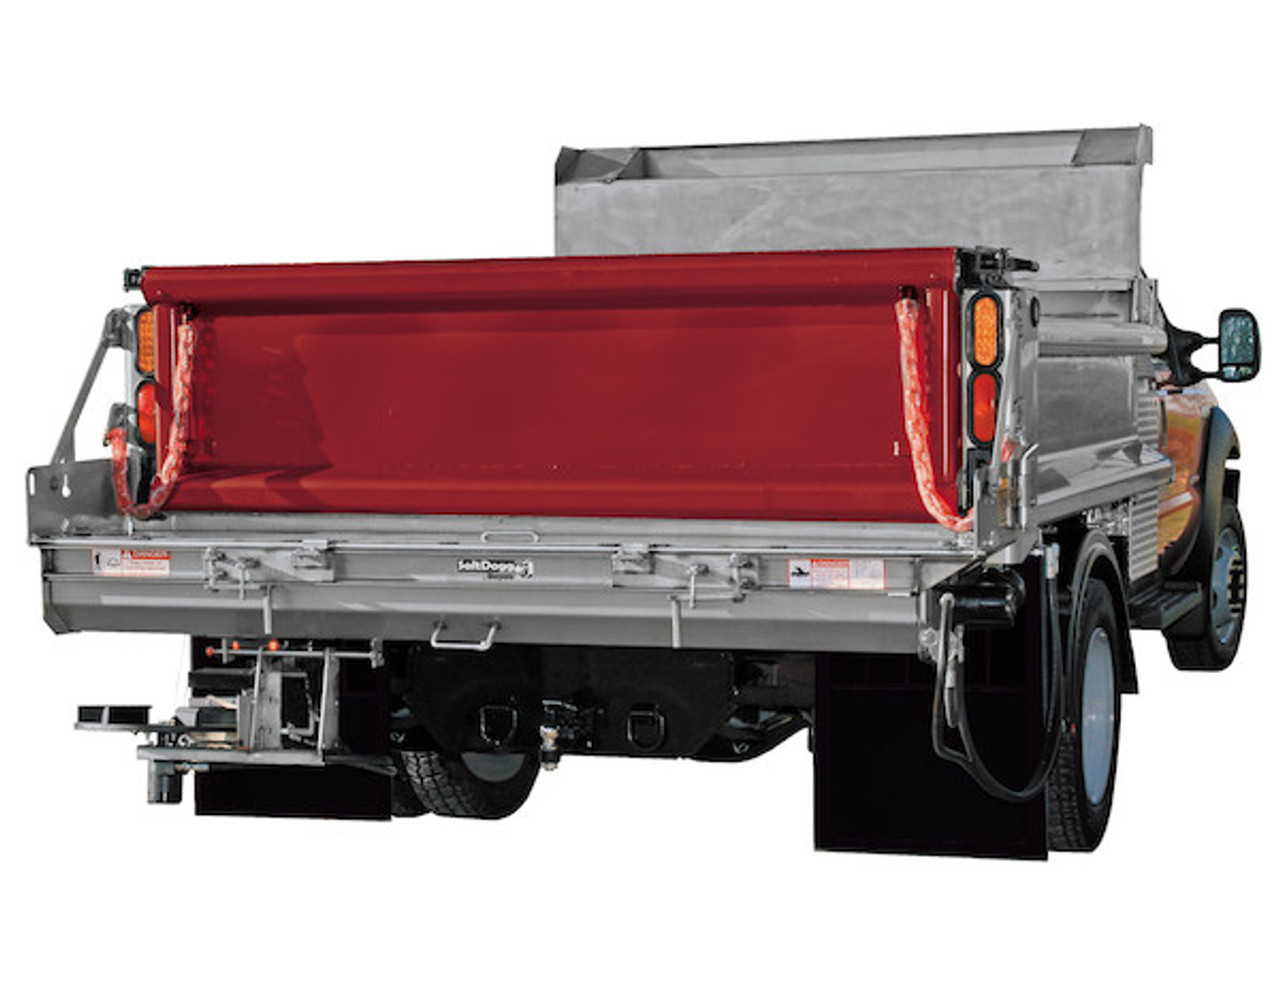 92425SSA BUYERS SALTDOGG HYDRAULIC UNDER TAILGATE STAINLESS STEEL SALT SPREADER